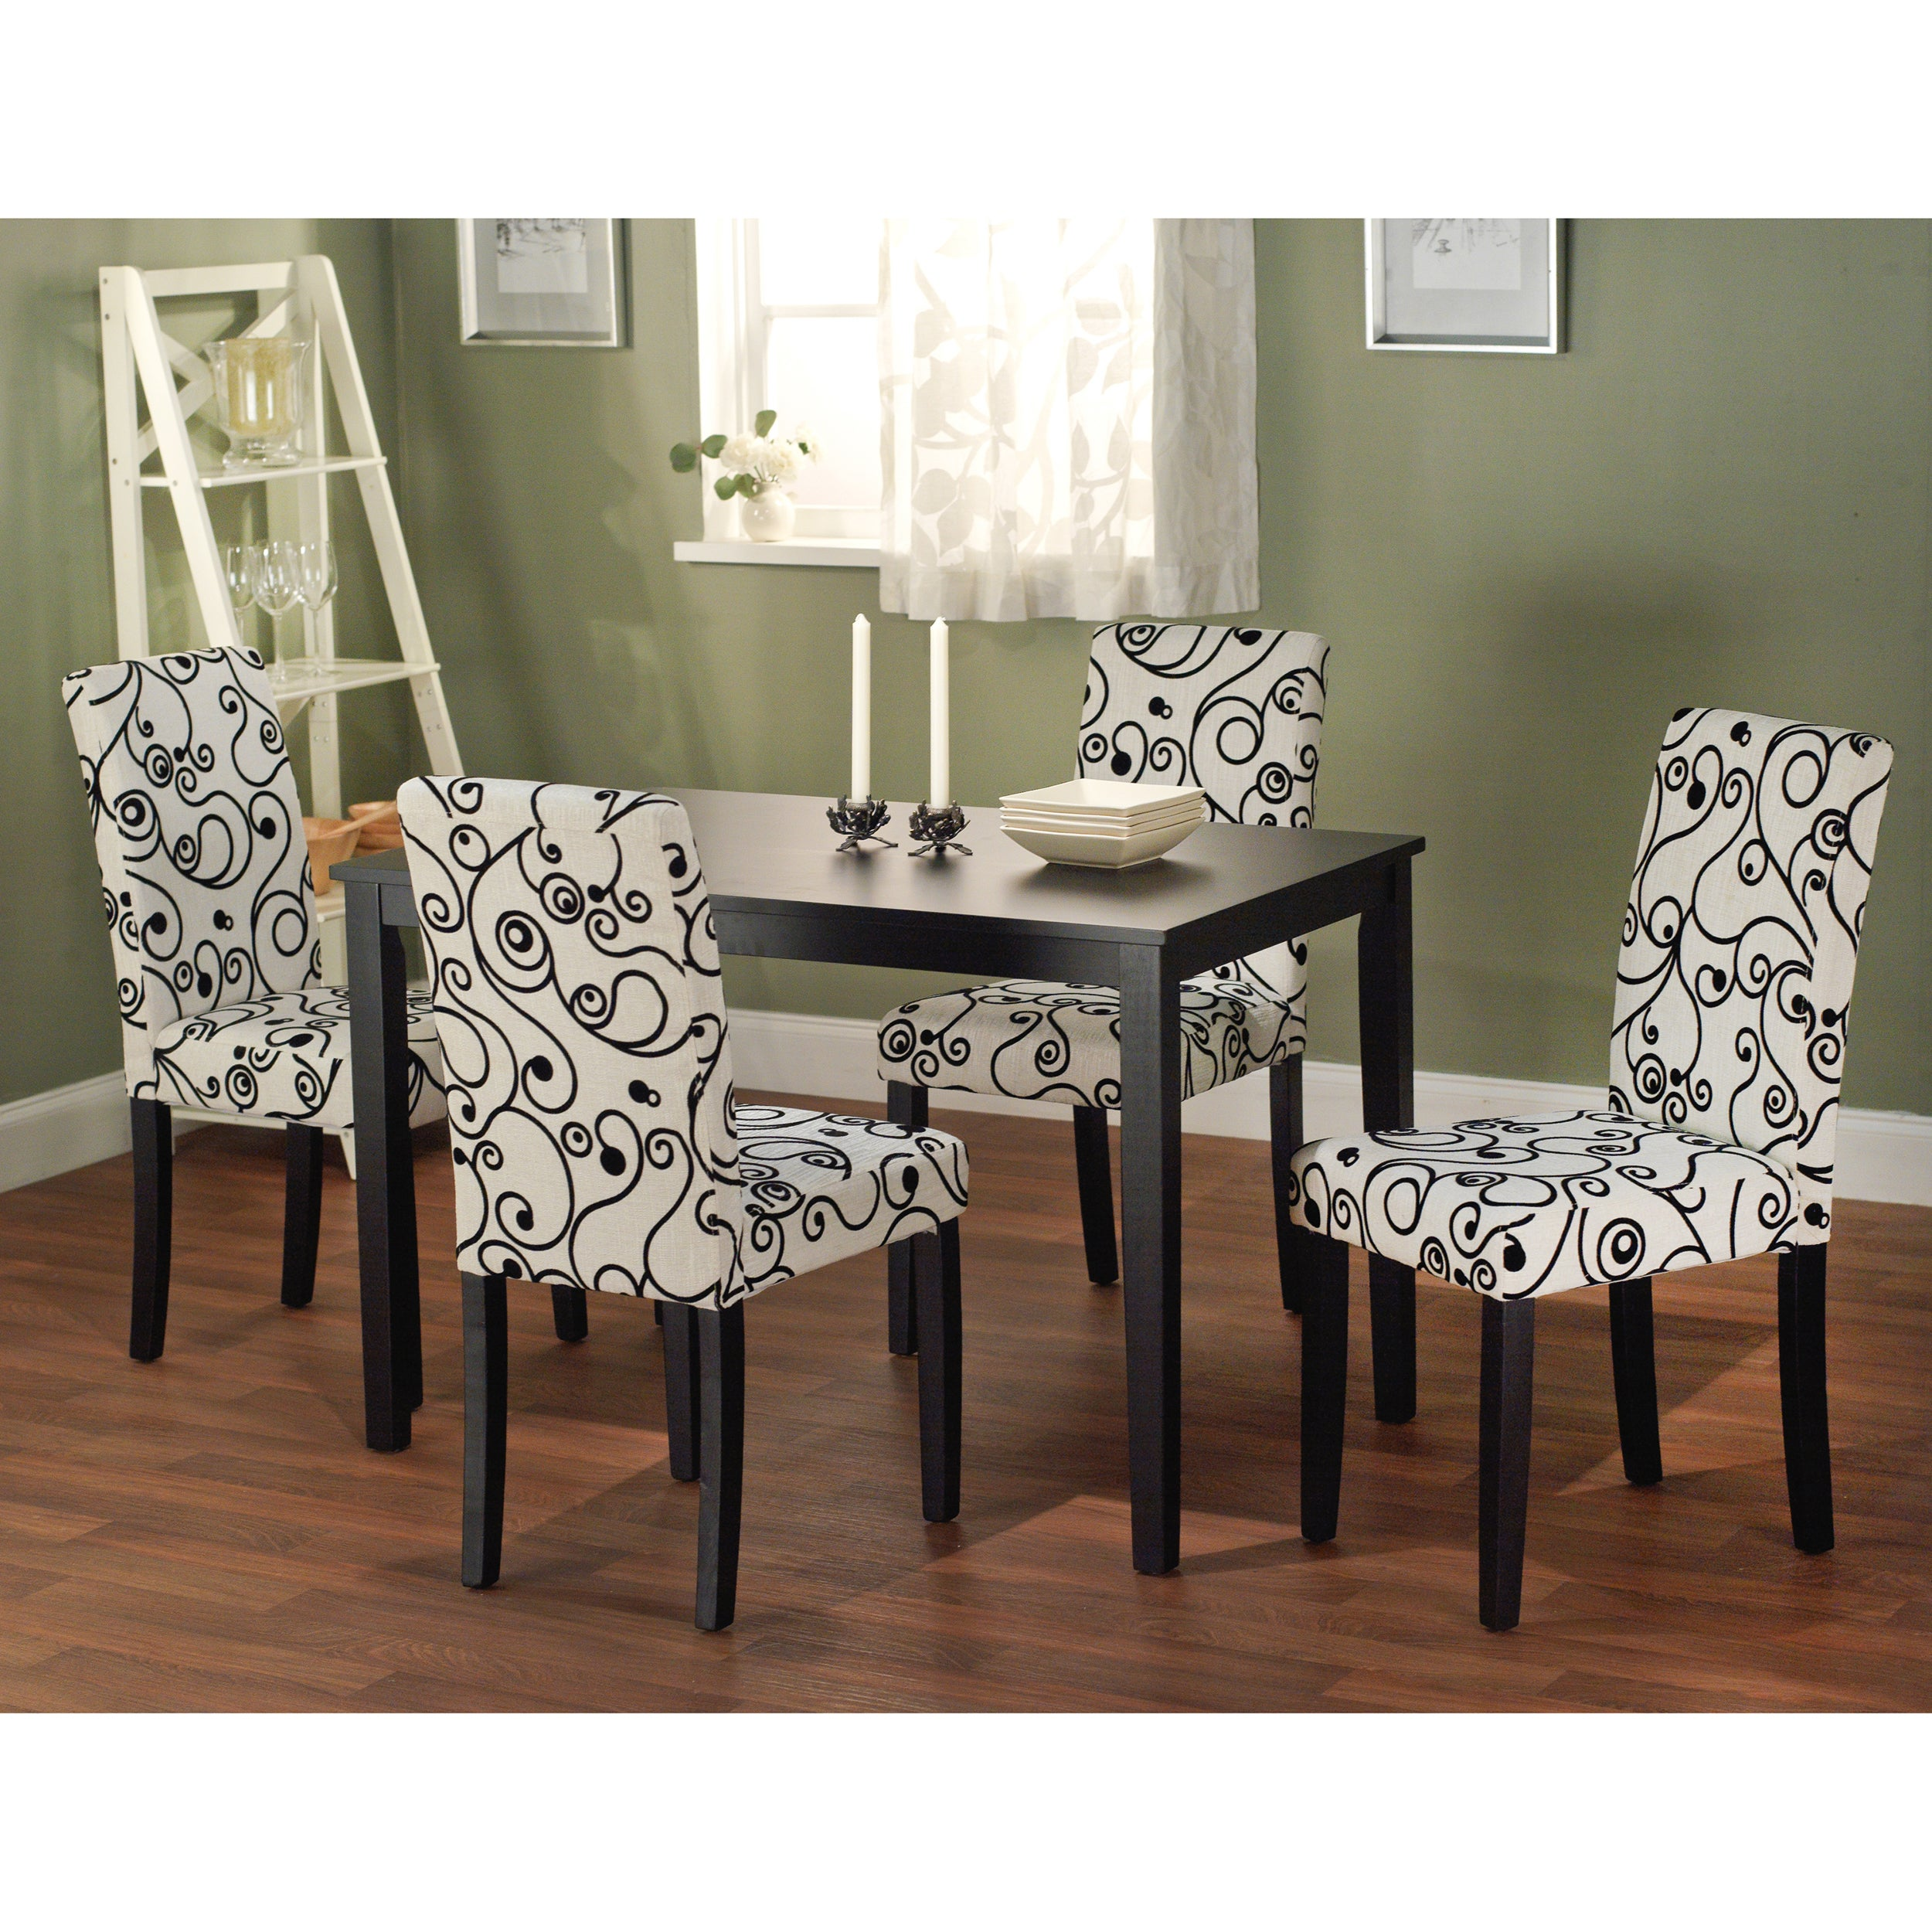 Sophia 5 piece parson dining set table chairs room piece for 5 piece dining room set with bench